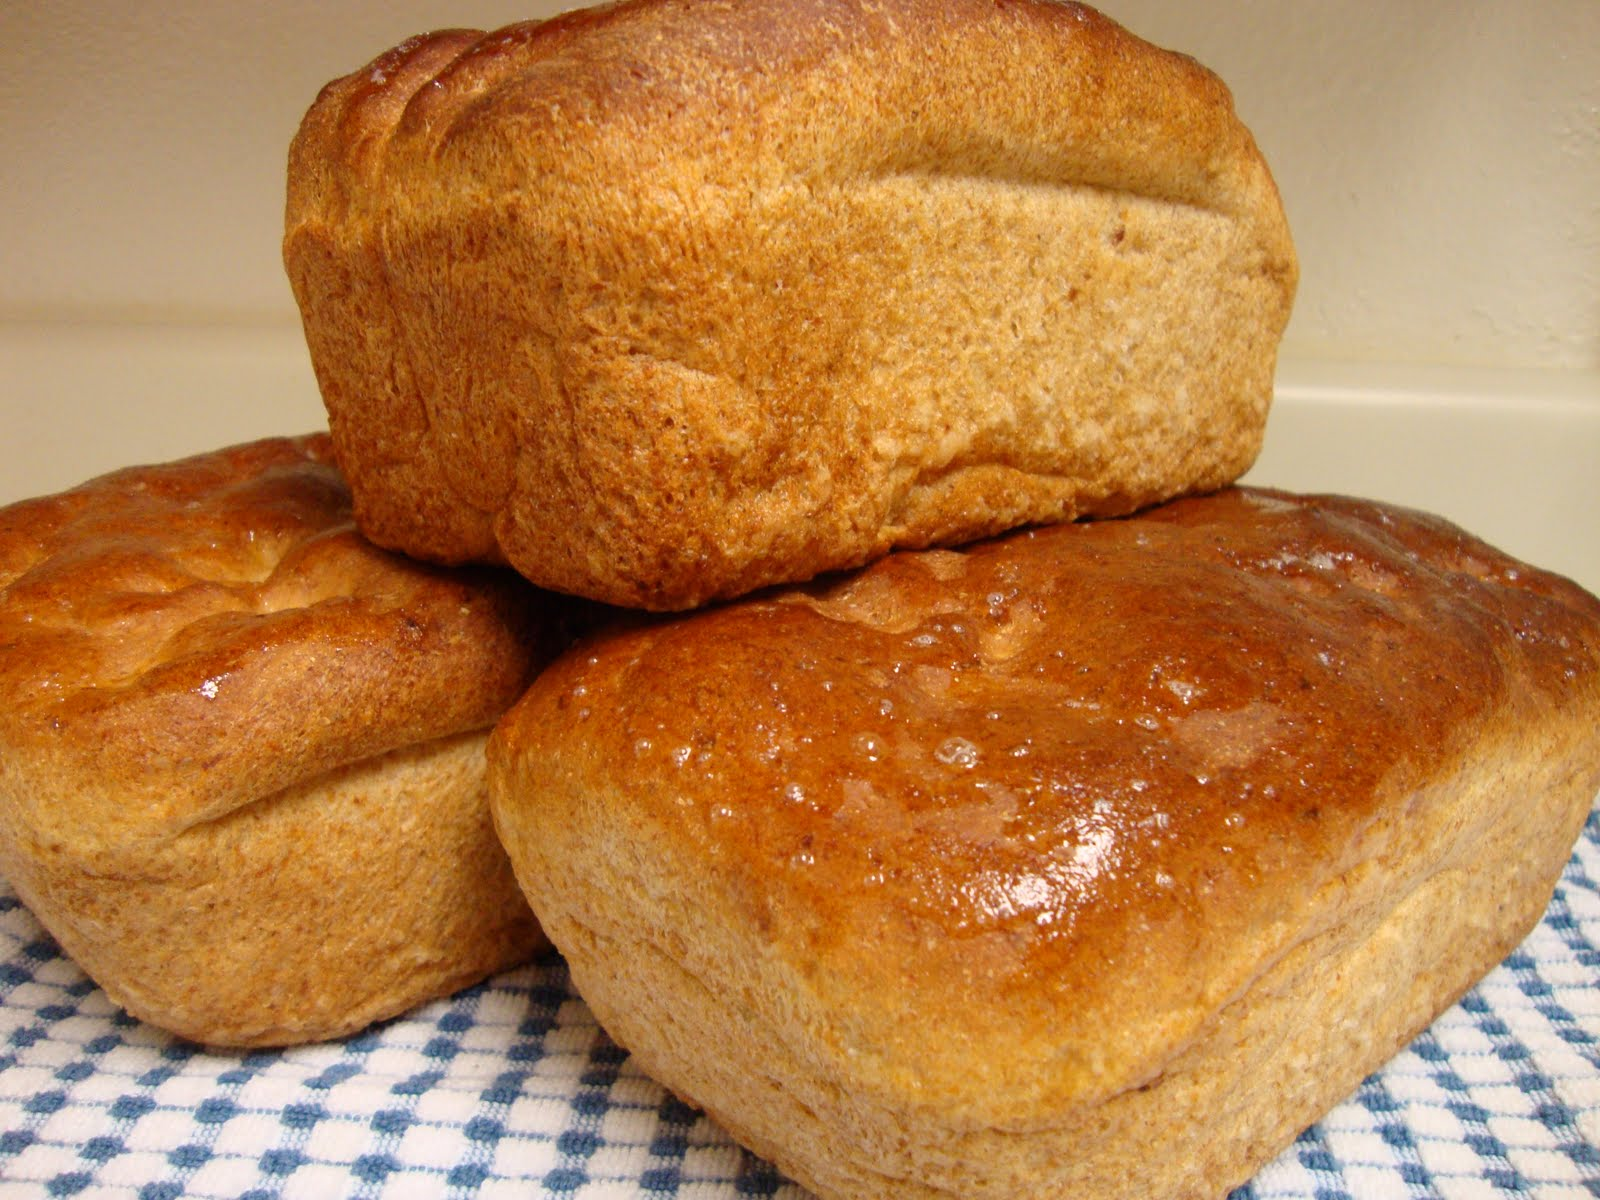 Learn How To Bake All Natural Whole Wheat Bread From Scratch How To Make Whole Wheat Bread Using A Stand Mixer If You End Up Making Lots Of Homemade Bread